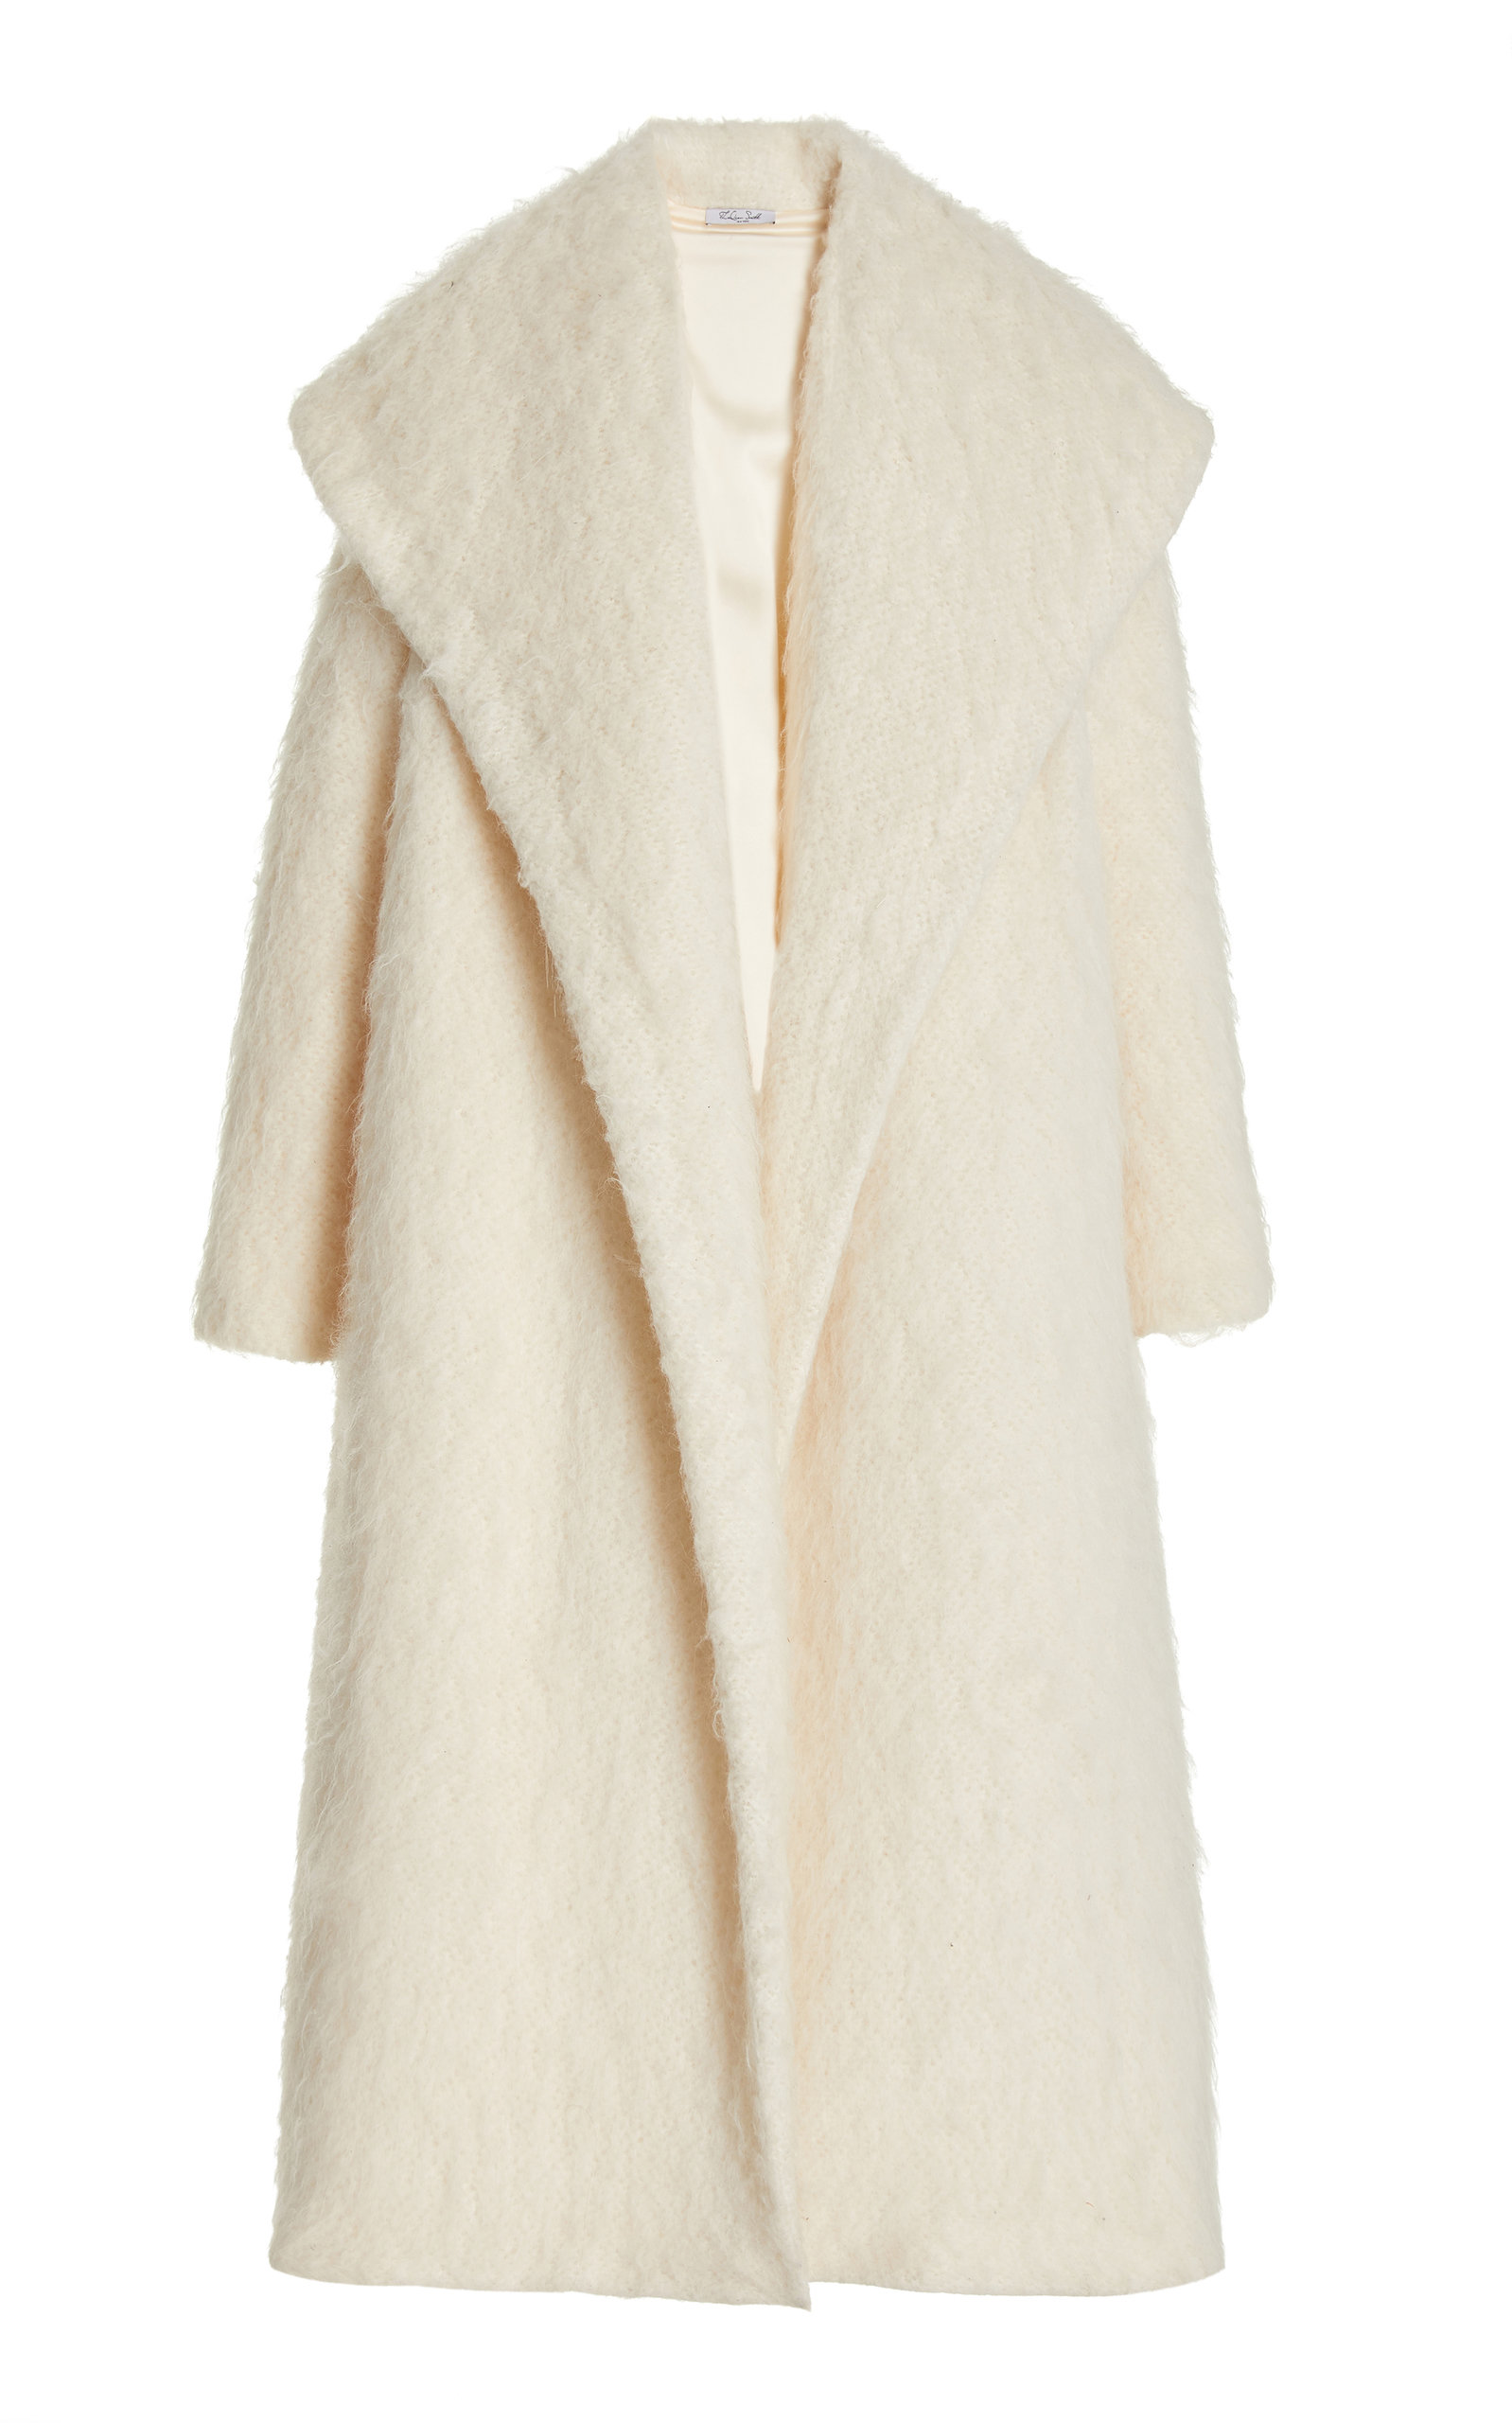 Women's Hooded Textured-Knit Coat